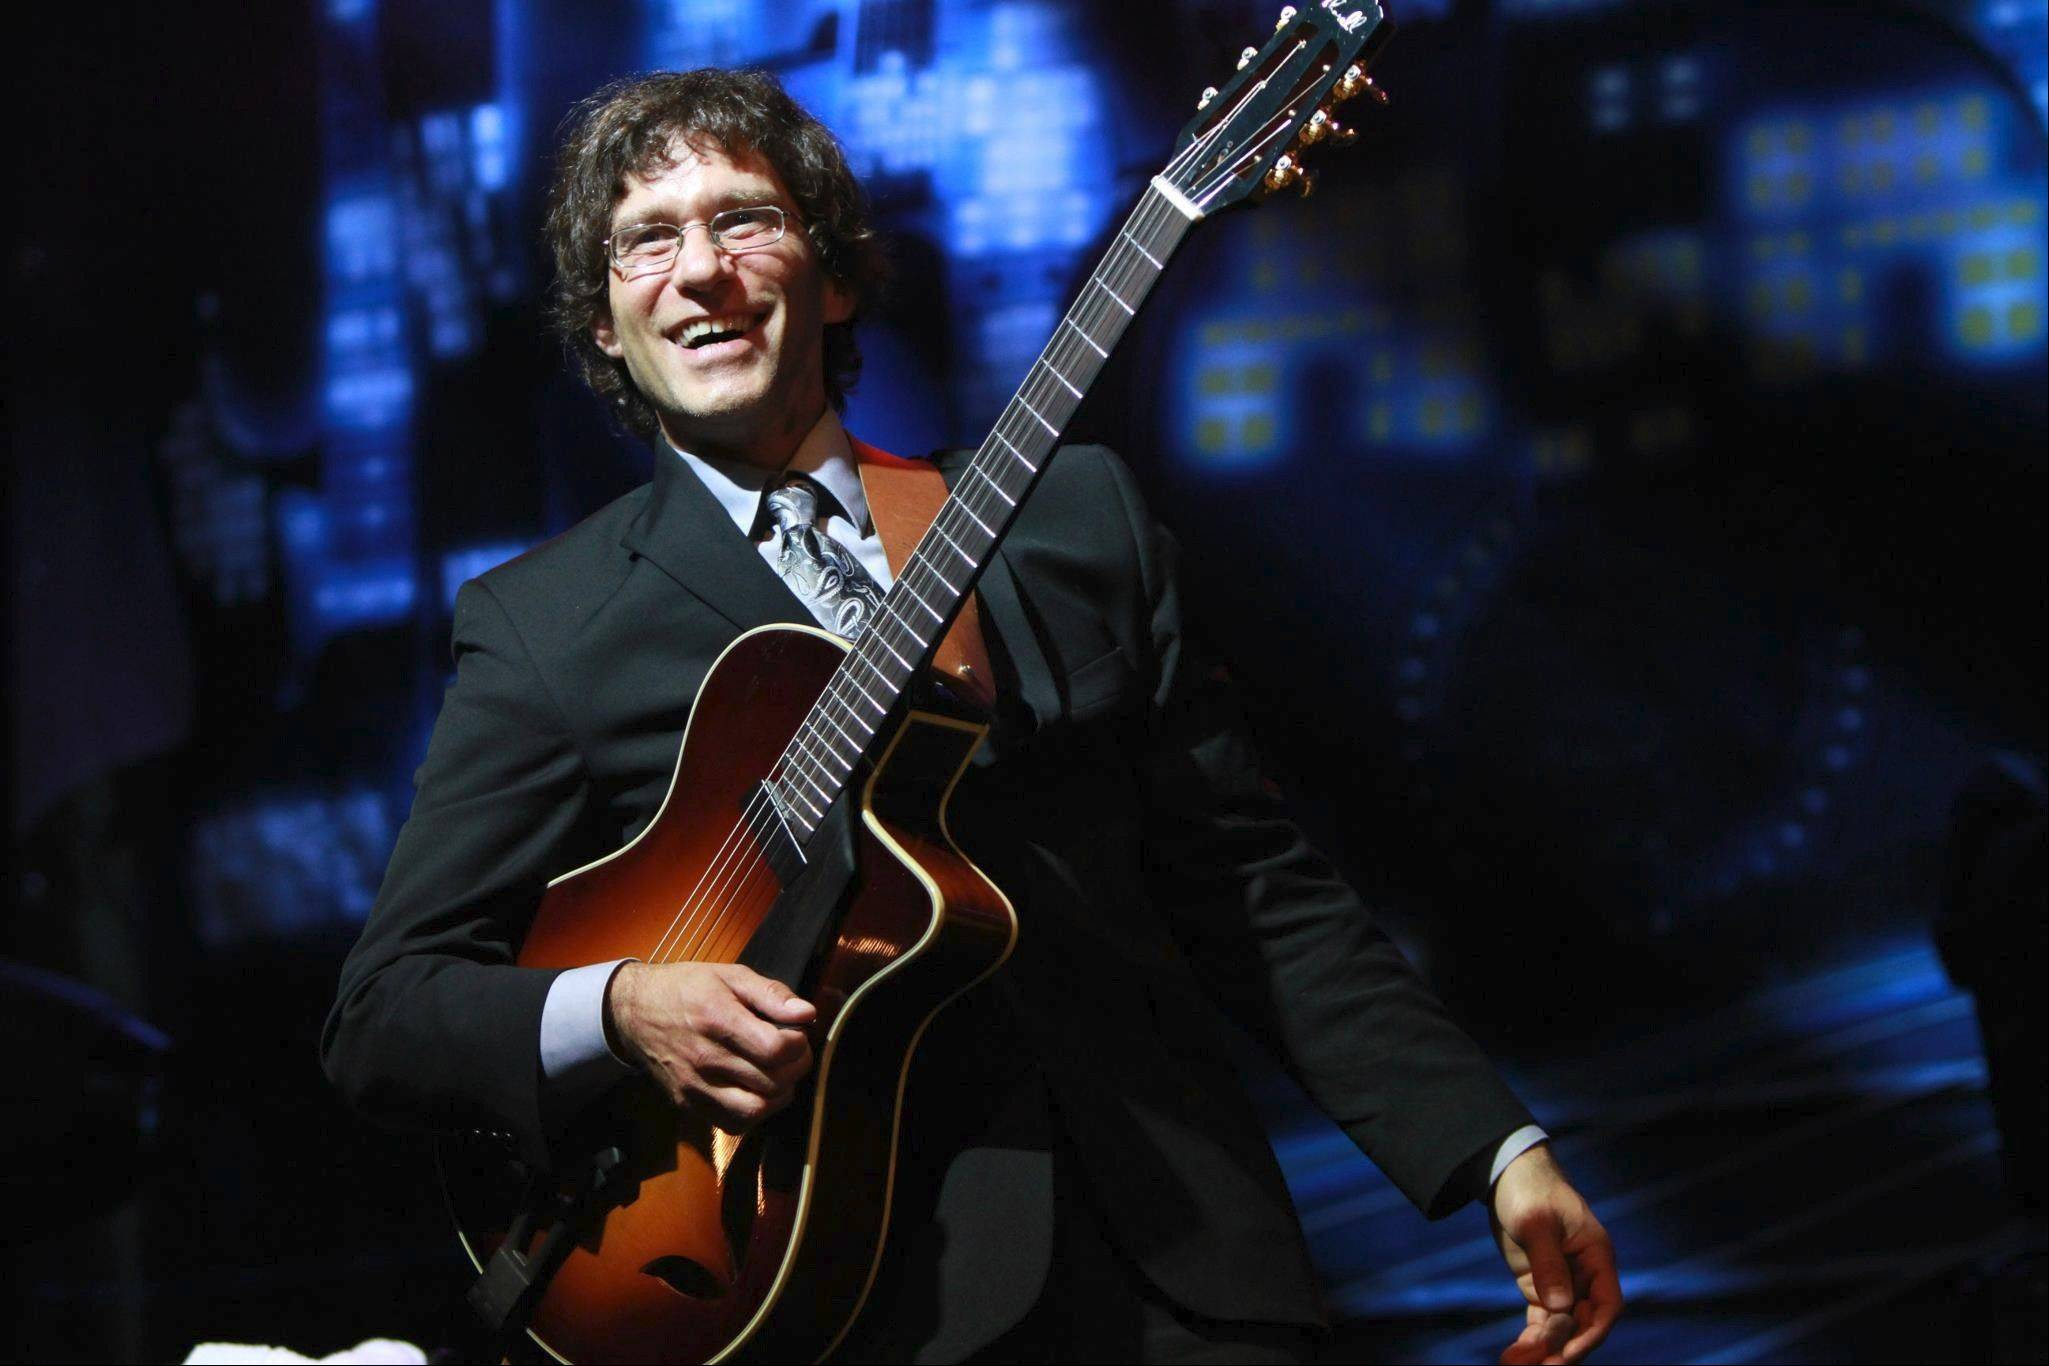 Jazz guitarist Frank Vignola will perform Friday, March 15, and Saturday, March 16, at Elgin Community College.